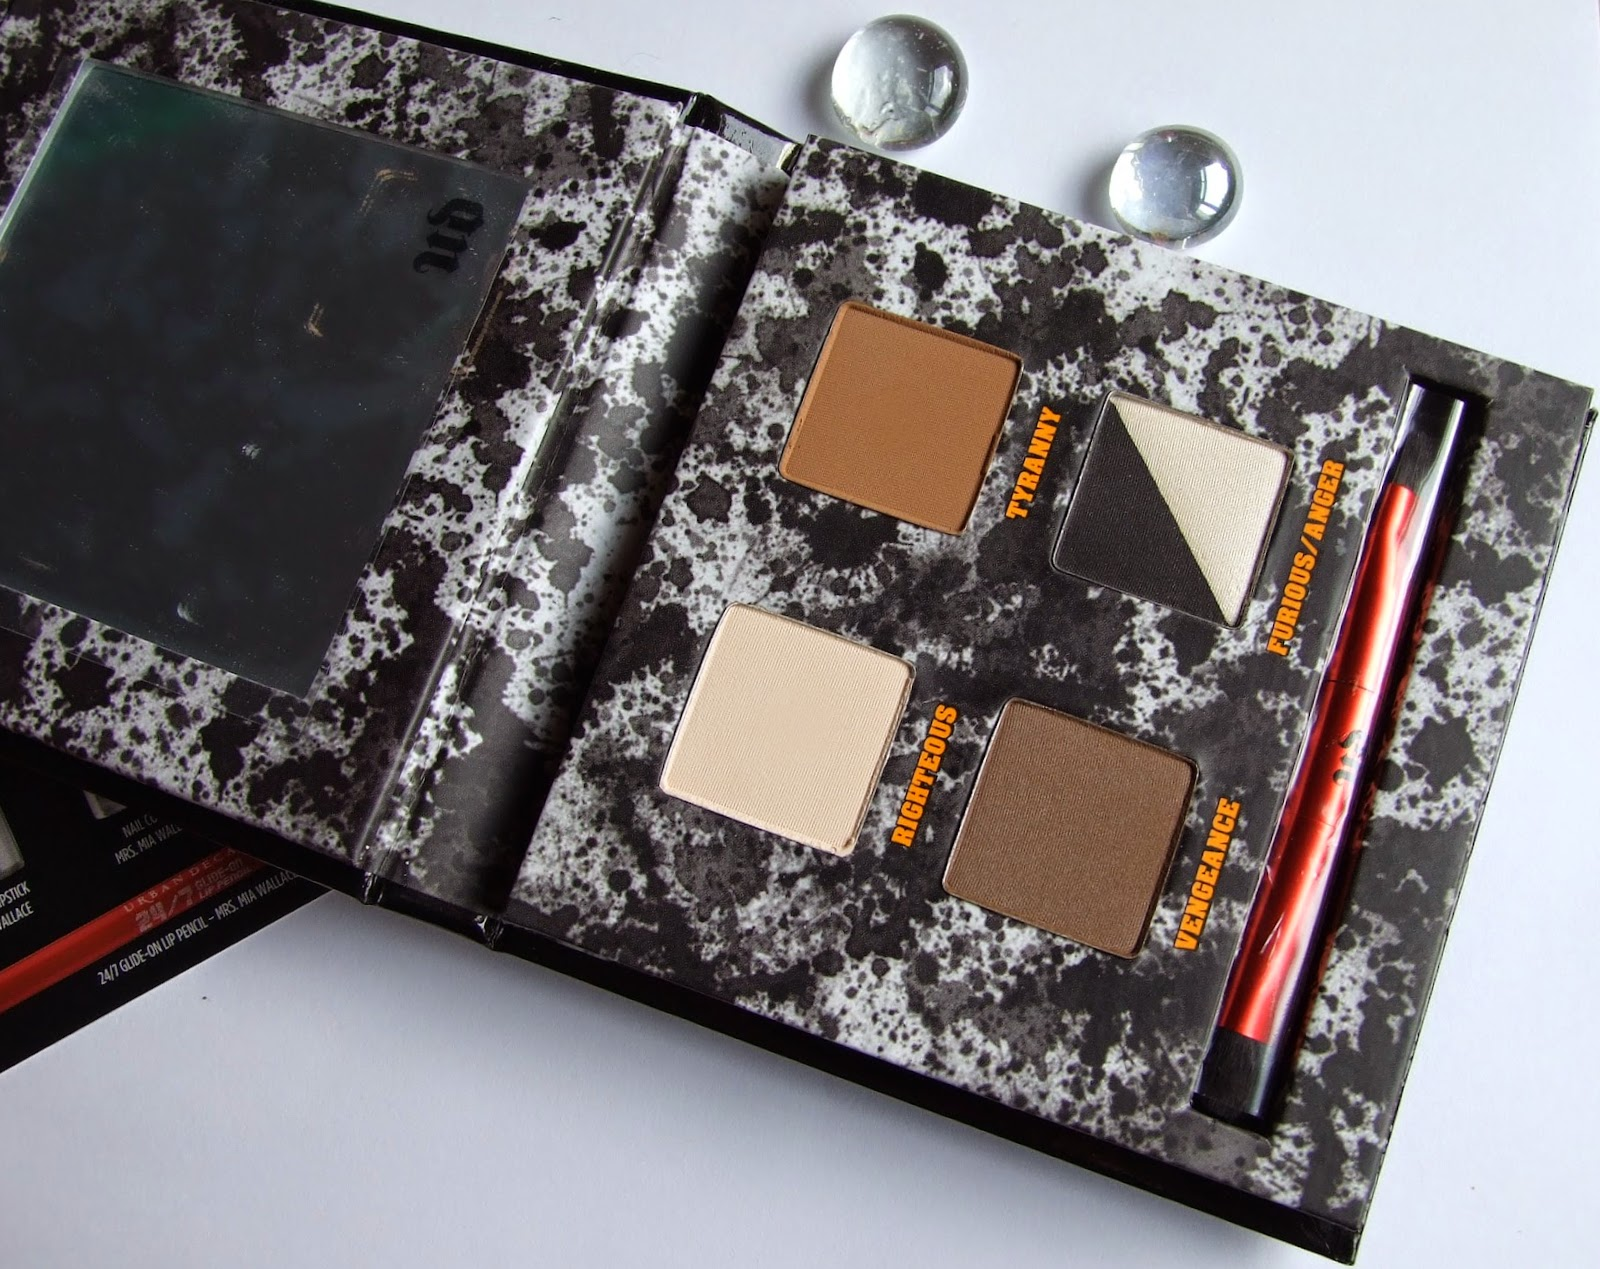 Urban decay pulp fiction Eyeshadow palette collection swatches review